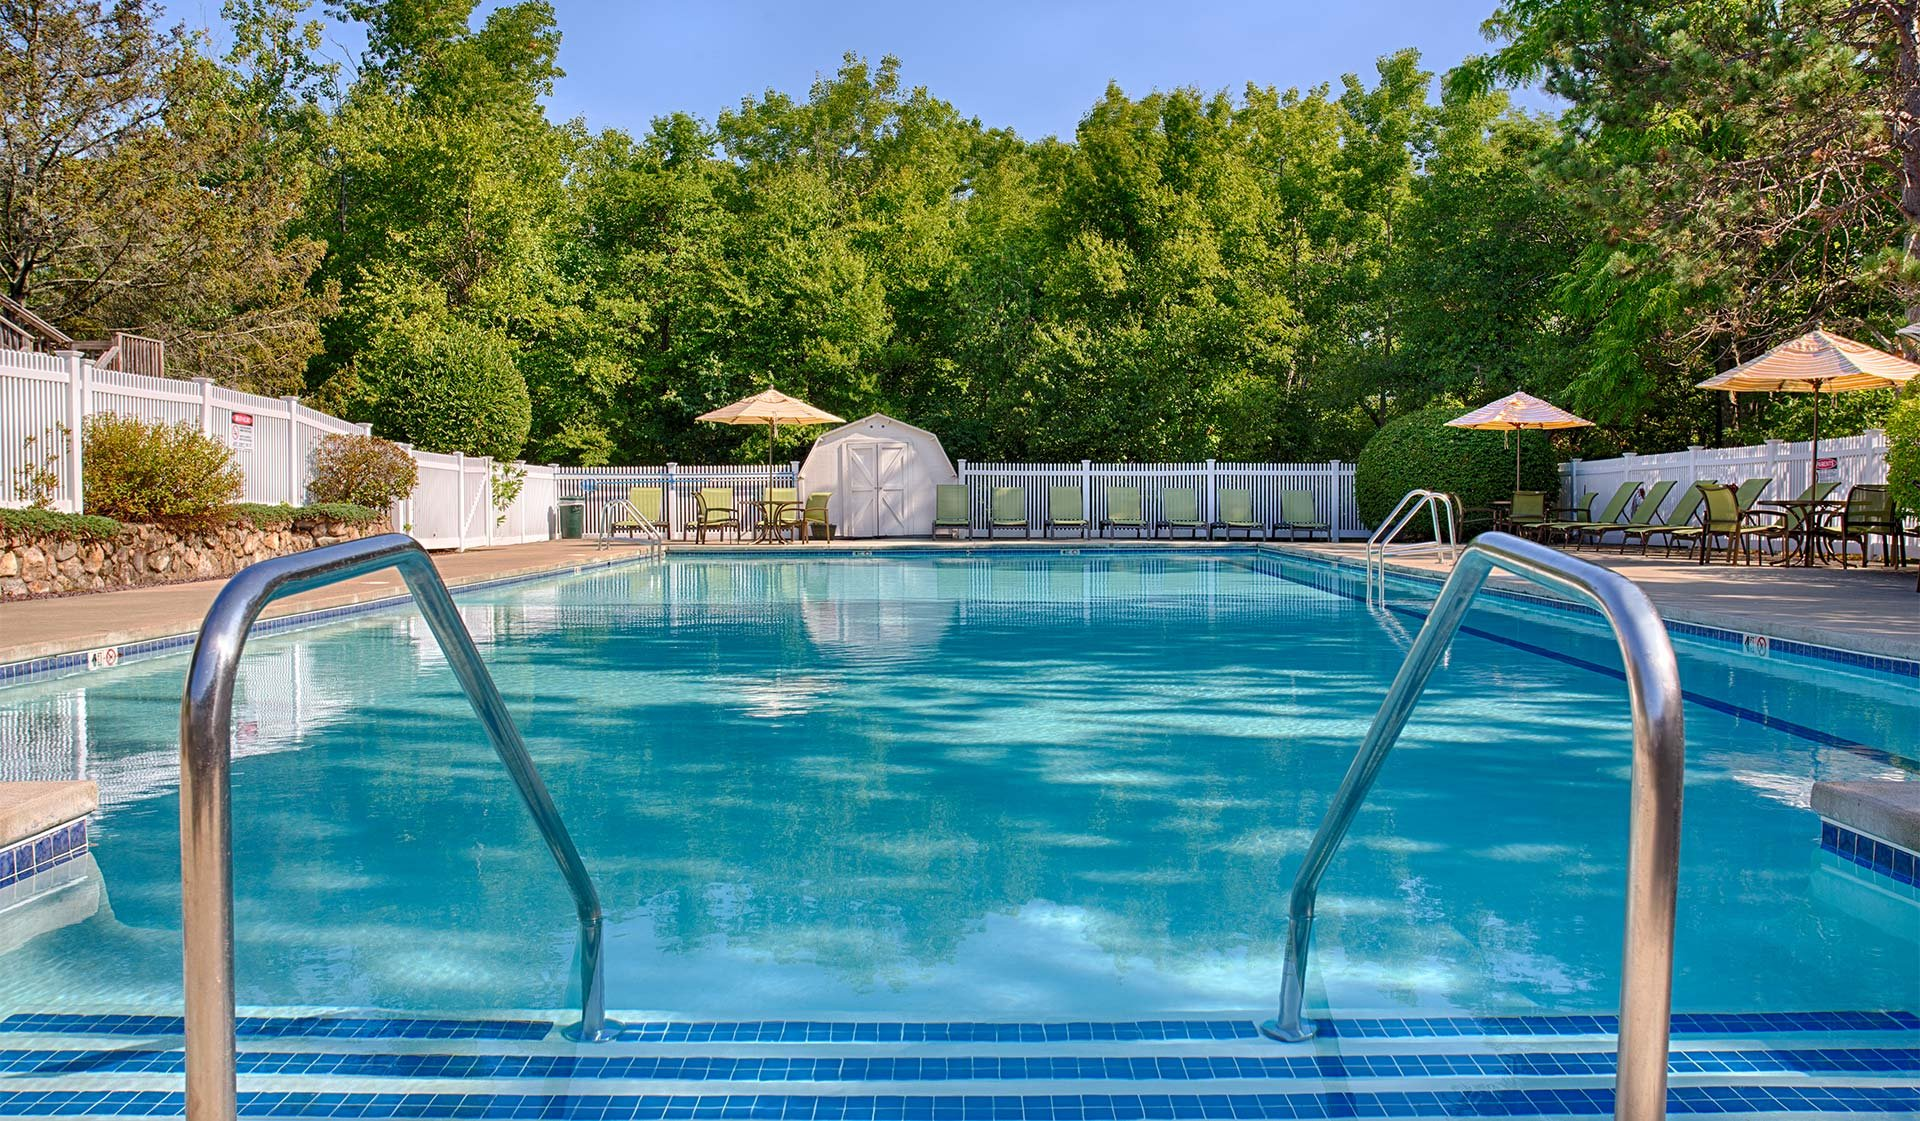 Wexford Village Apartment Homes in Worcester, MA - Resort-style Pool